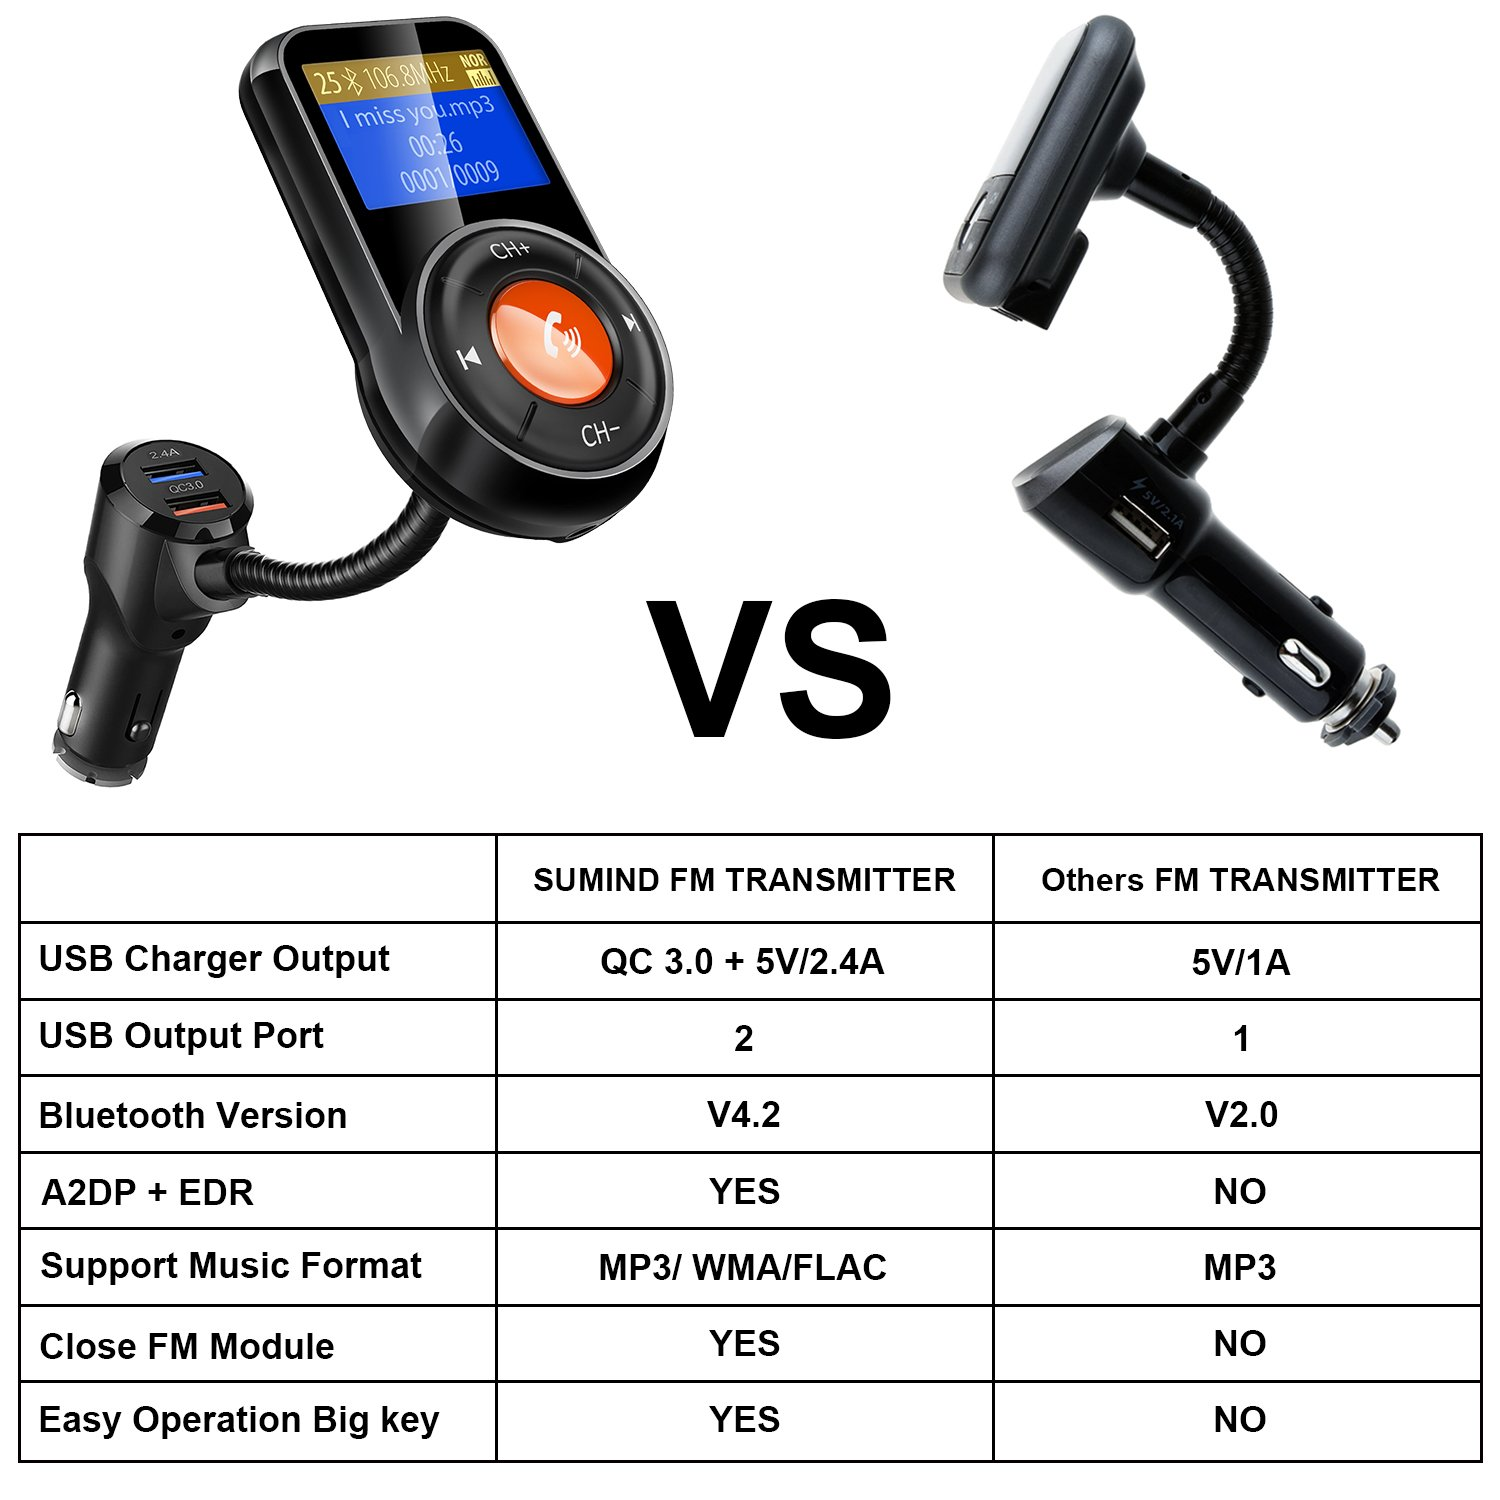 Hicarer (New Version) FM Transmitter, Radio Adapter Receiver Hands-free Wireless Car Adapter, Scan FM Transmitter, 1.4 Inch LCD Display, QC3.0/2.4A Dual USB Ports, Supports for Bluetooth/TF Card by Hicarer (Image #7)